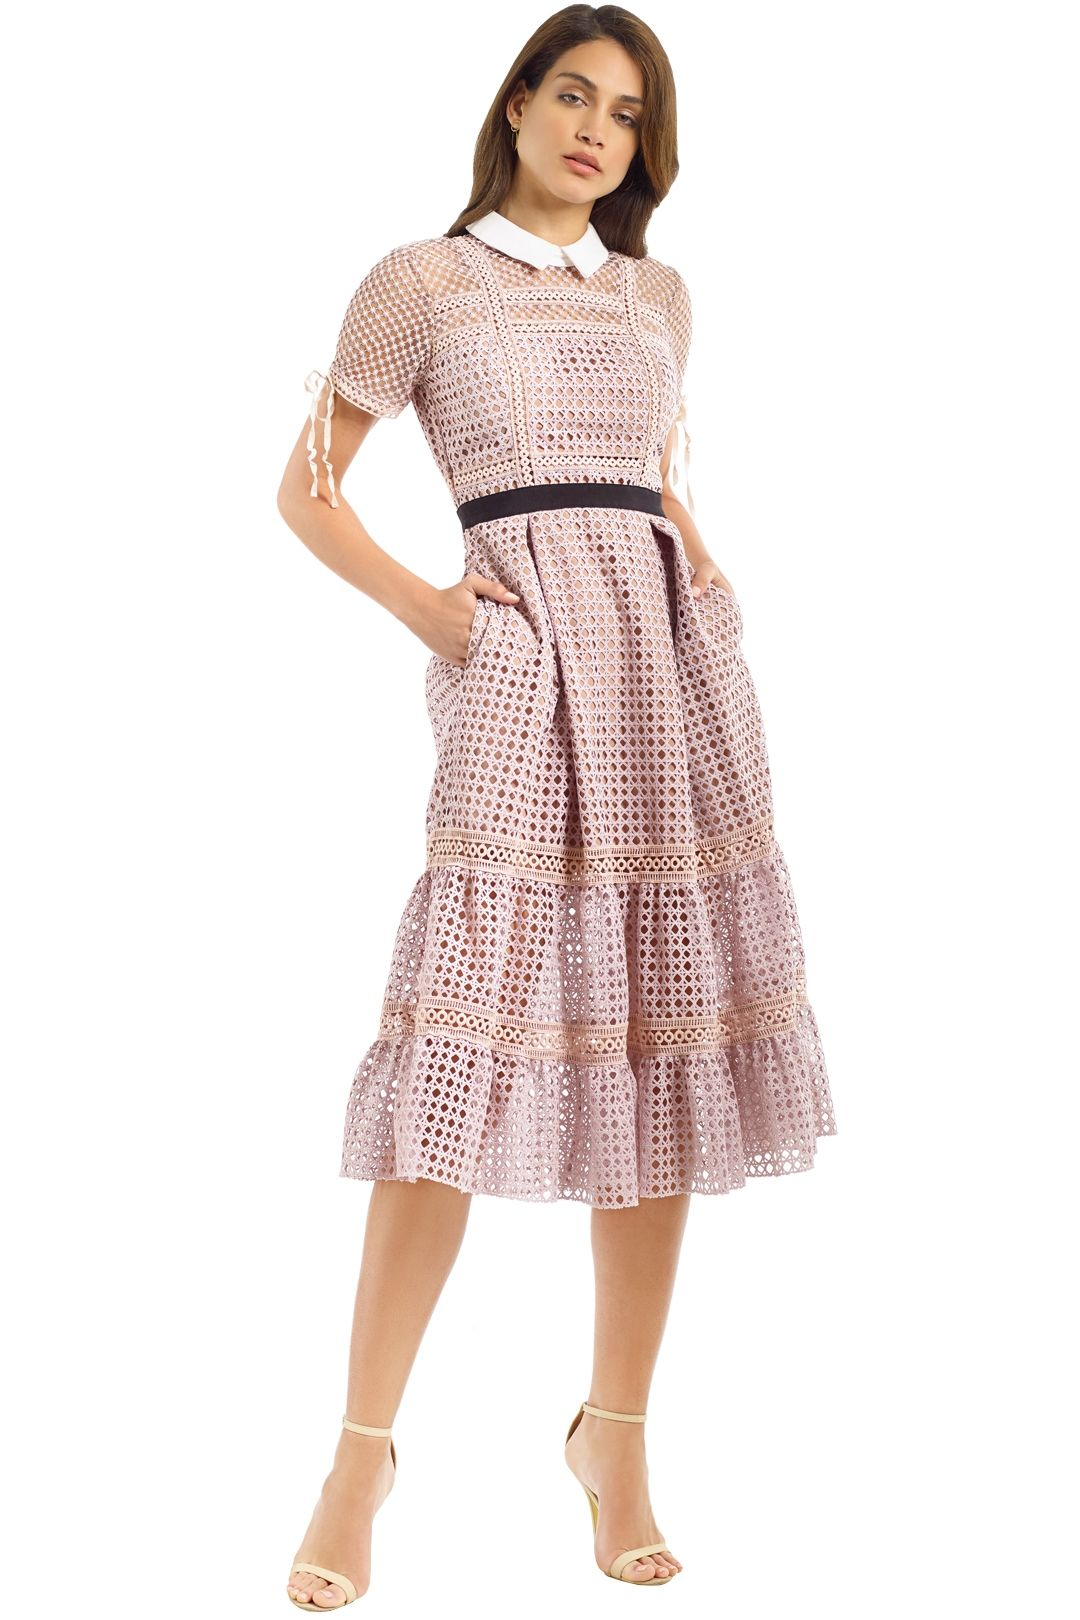 Self Portrait - Cross Hatch Tiered Midi Dress - Pastel Pink - Front